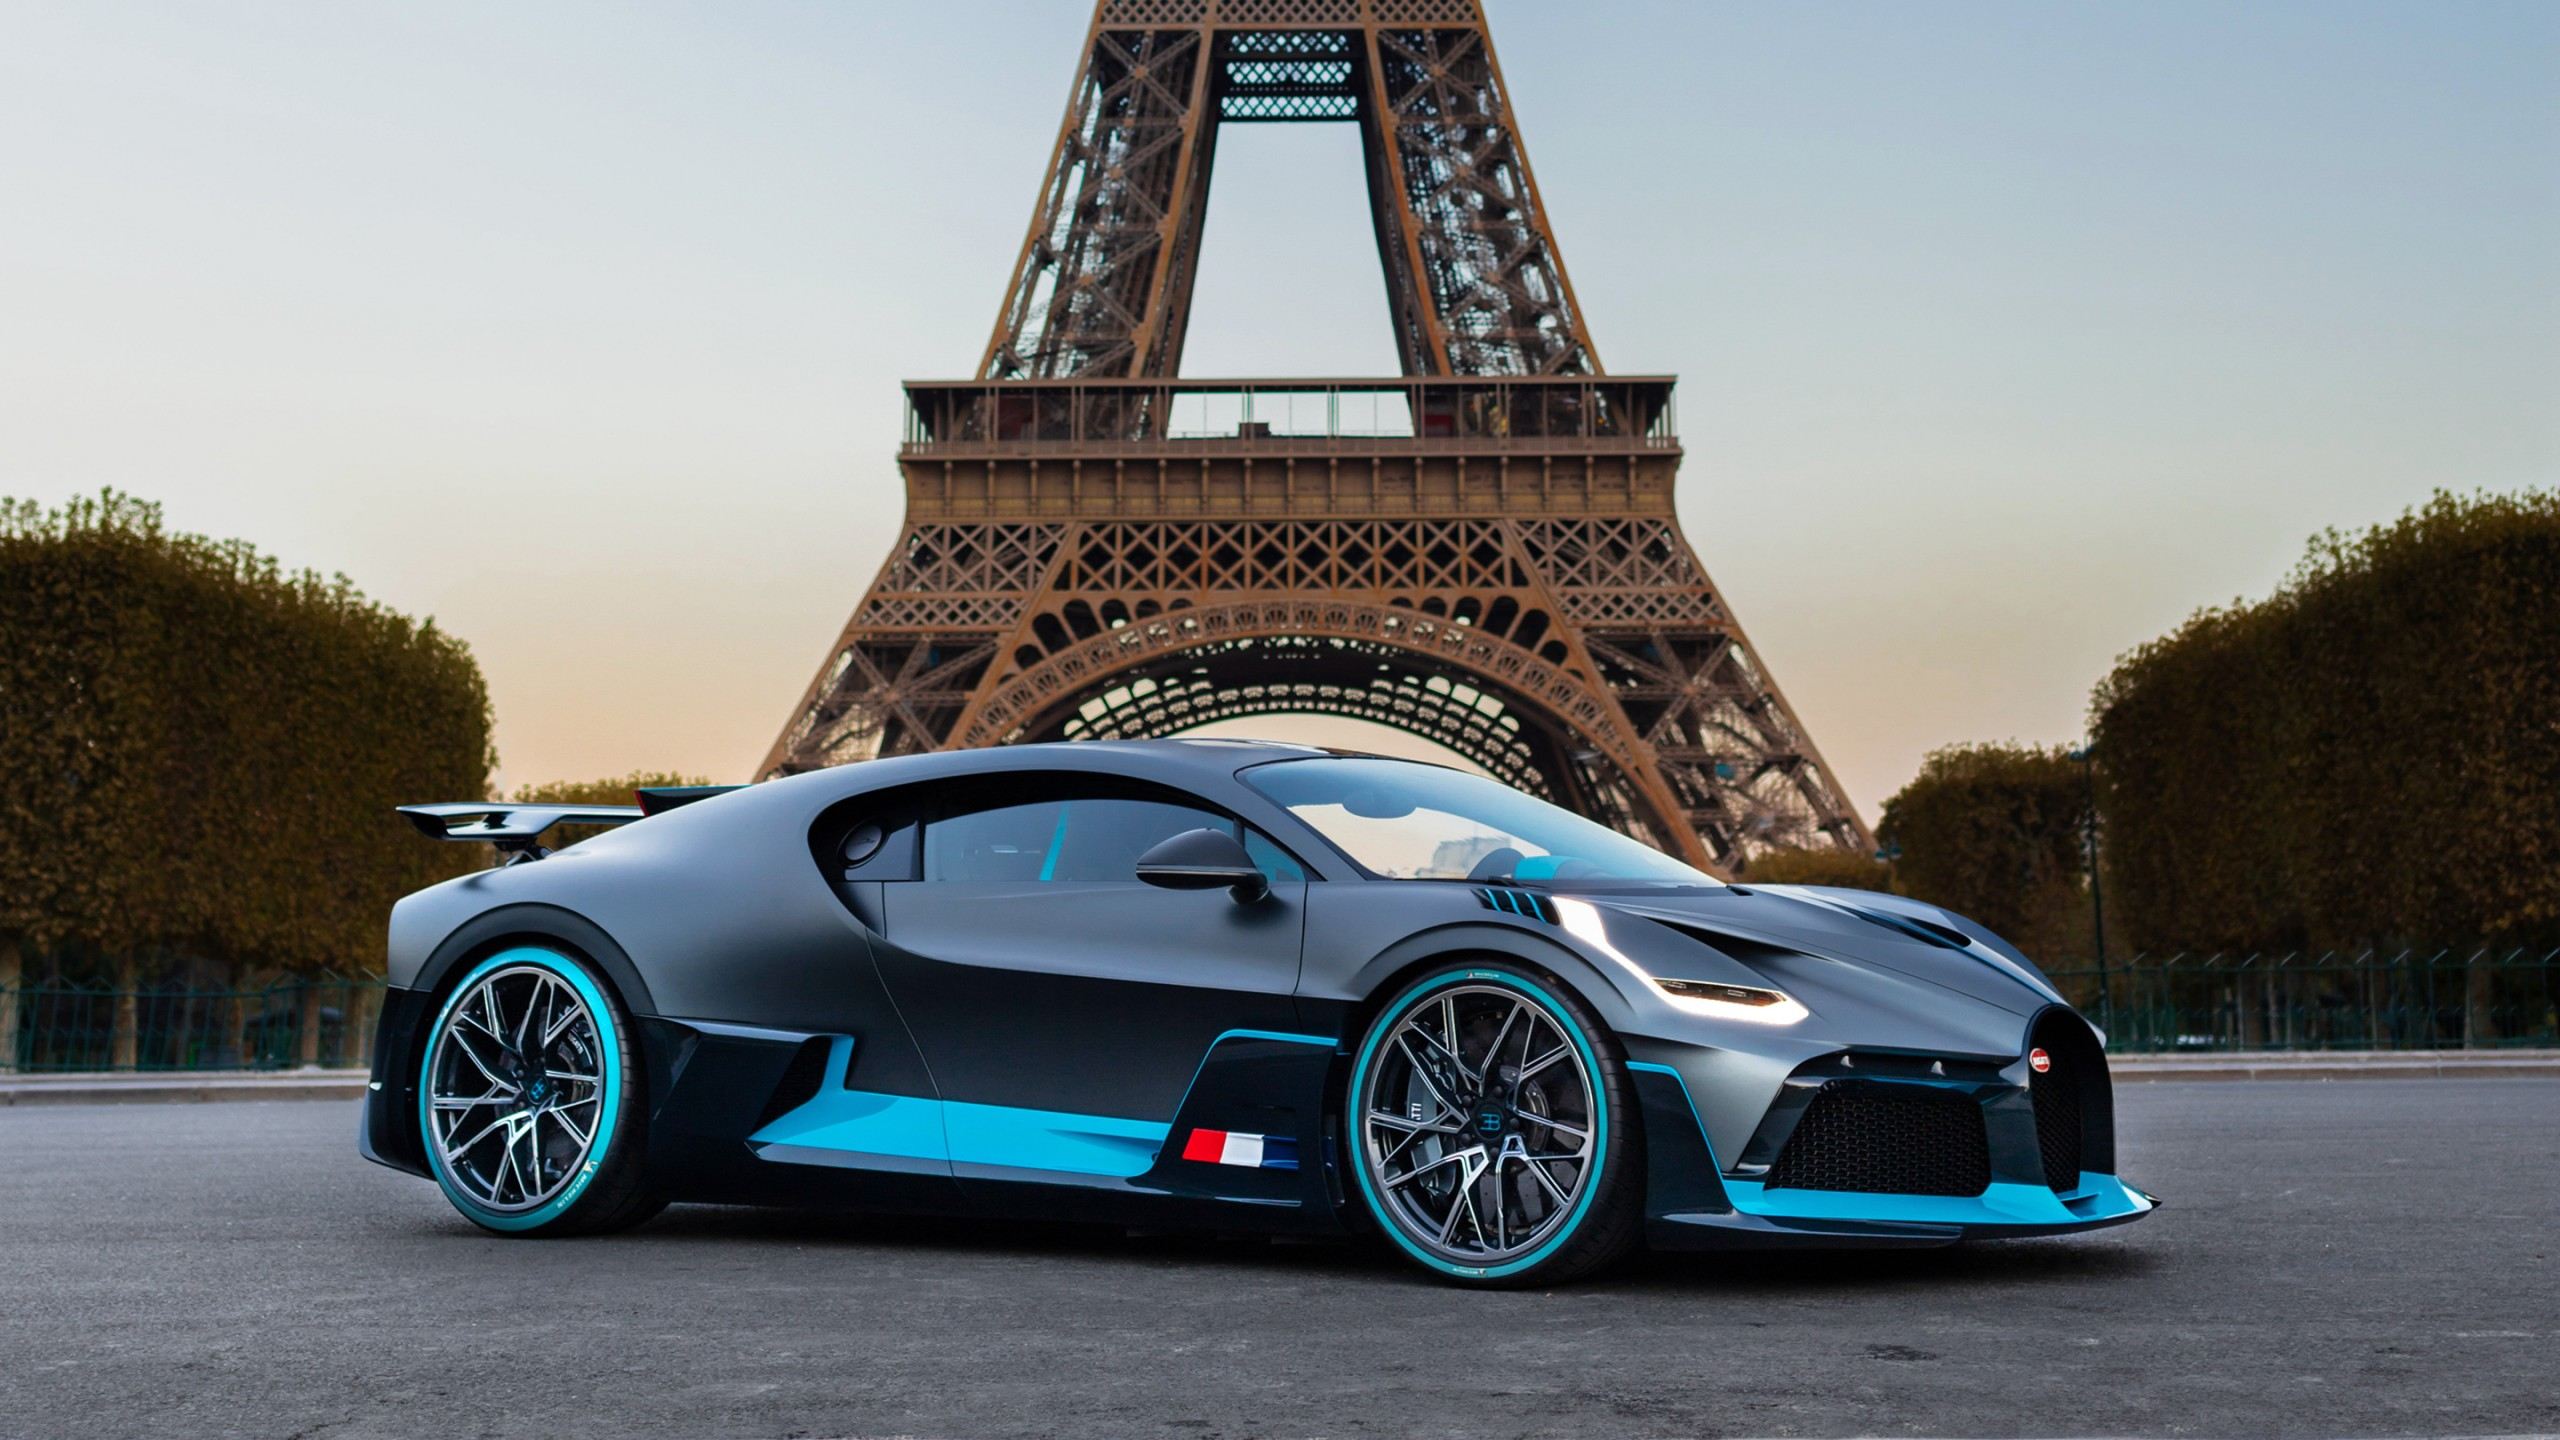 Car Wallpaper Cadillac 2018 Bugatti Divo In Paris Wallpaper Hd Car Wallpapers Id